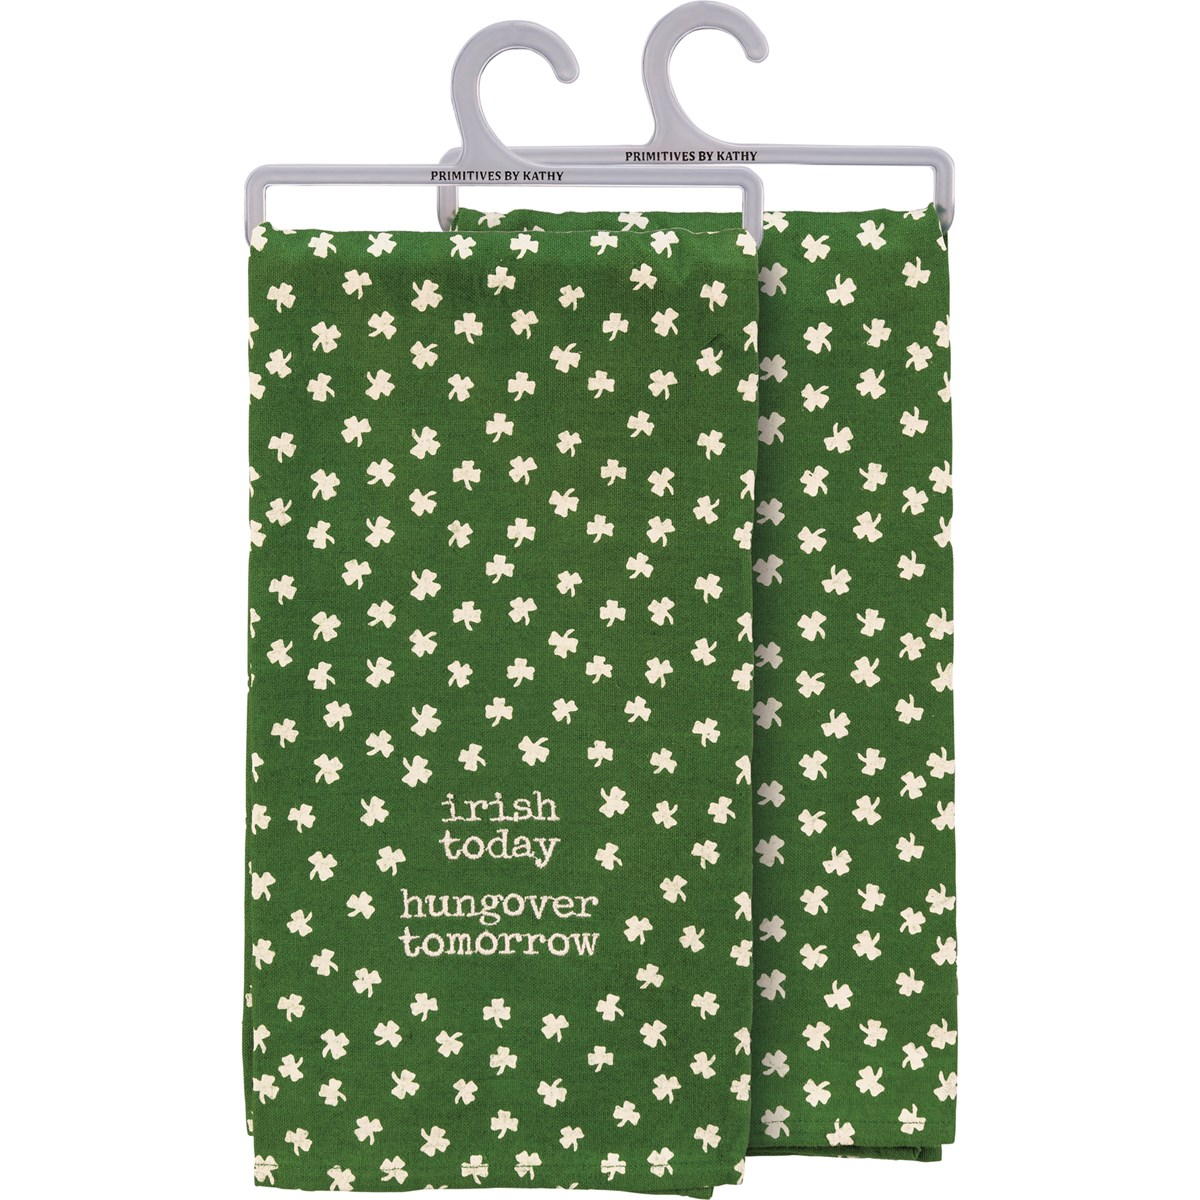 "Dish Towel - Irish Today Hungover Tomorrow - 20"" x 26"" - Cotton, Linen"